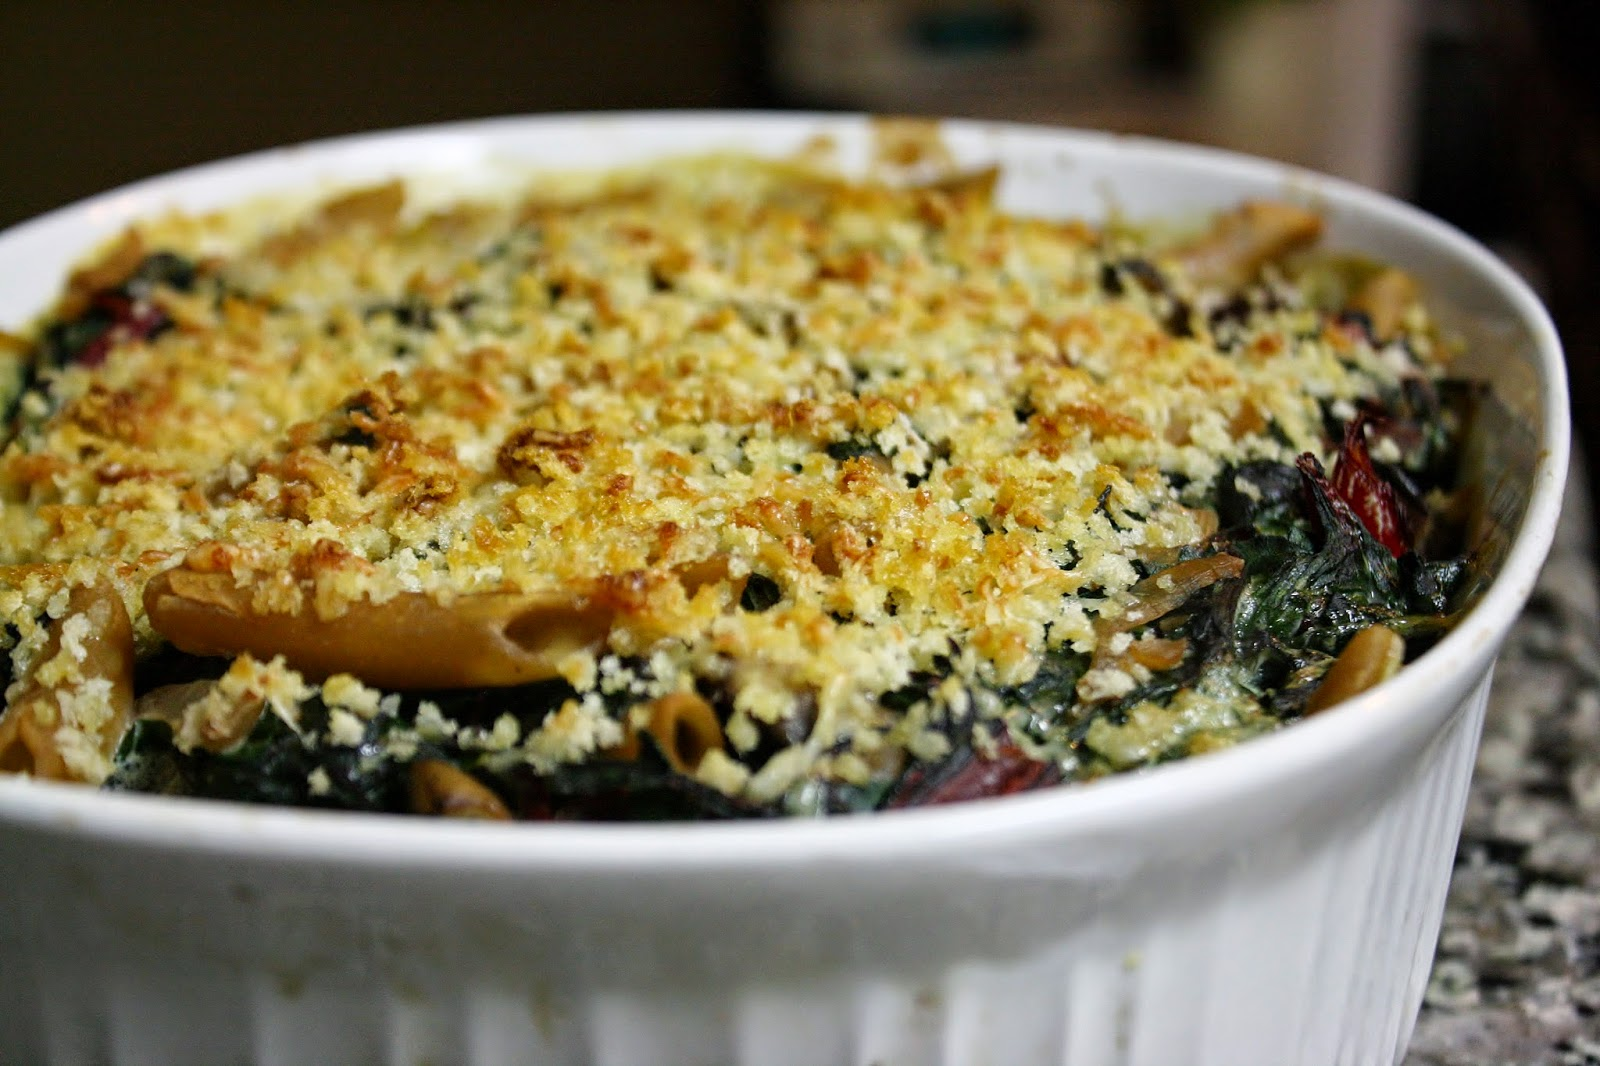 http://eatprayjuice.blogspot.com/2014/12/baked-pasta-with-chicken-and-swiss-chard.html